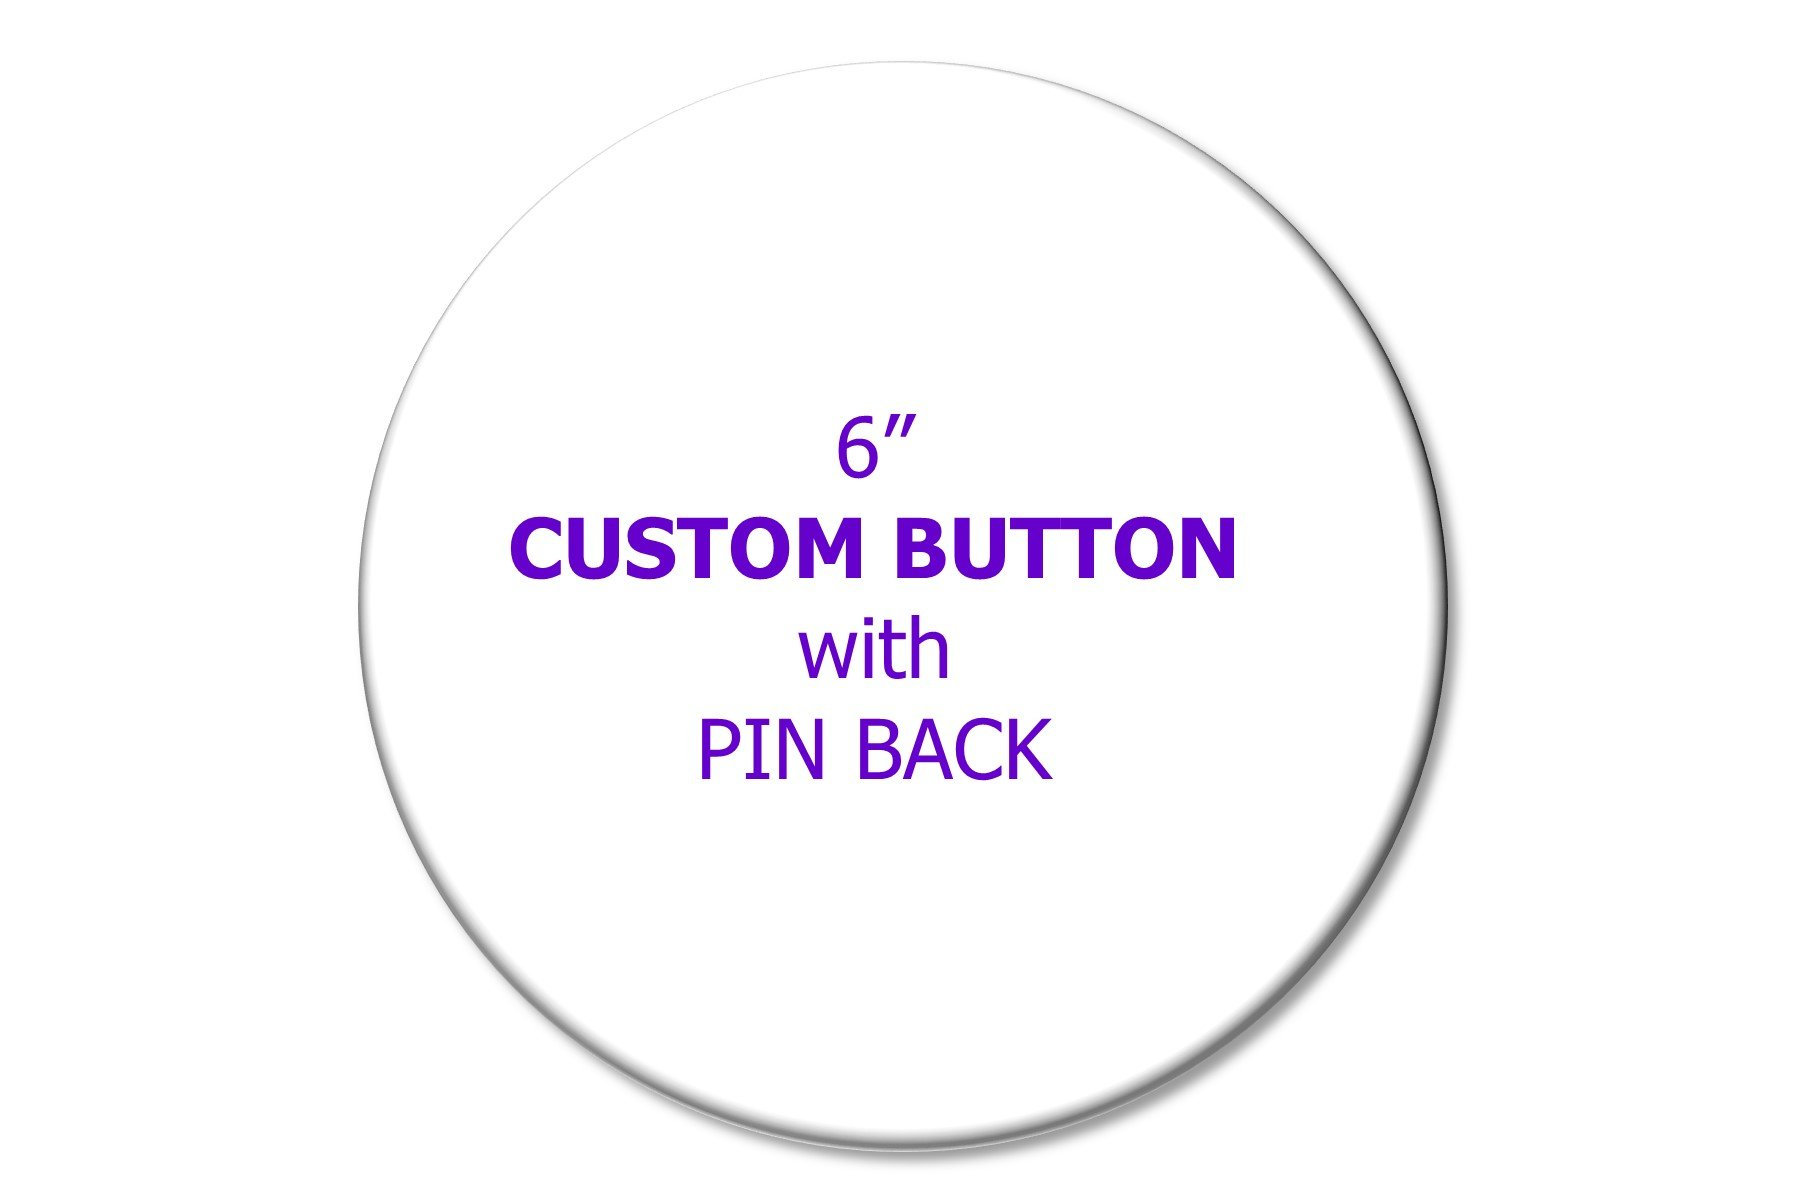 6 CUSTOM BUTTON